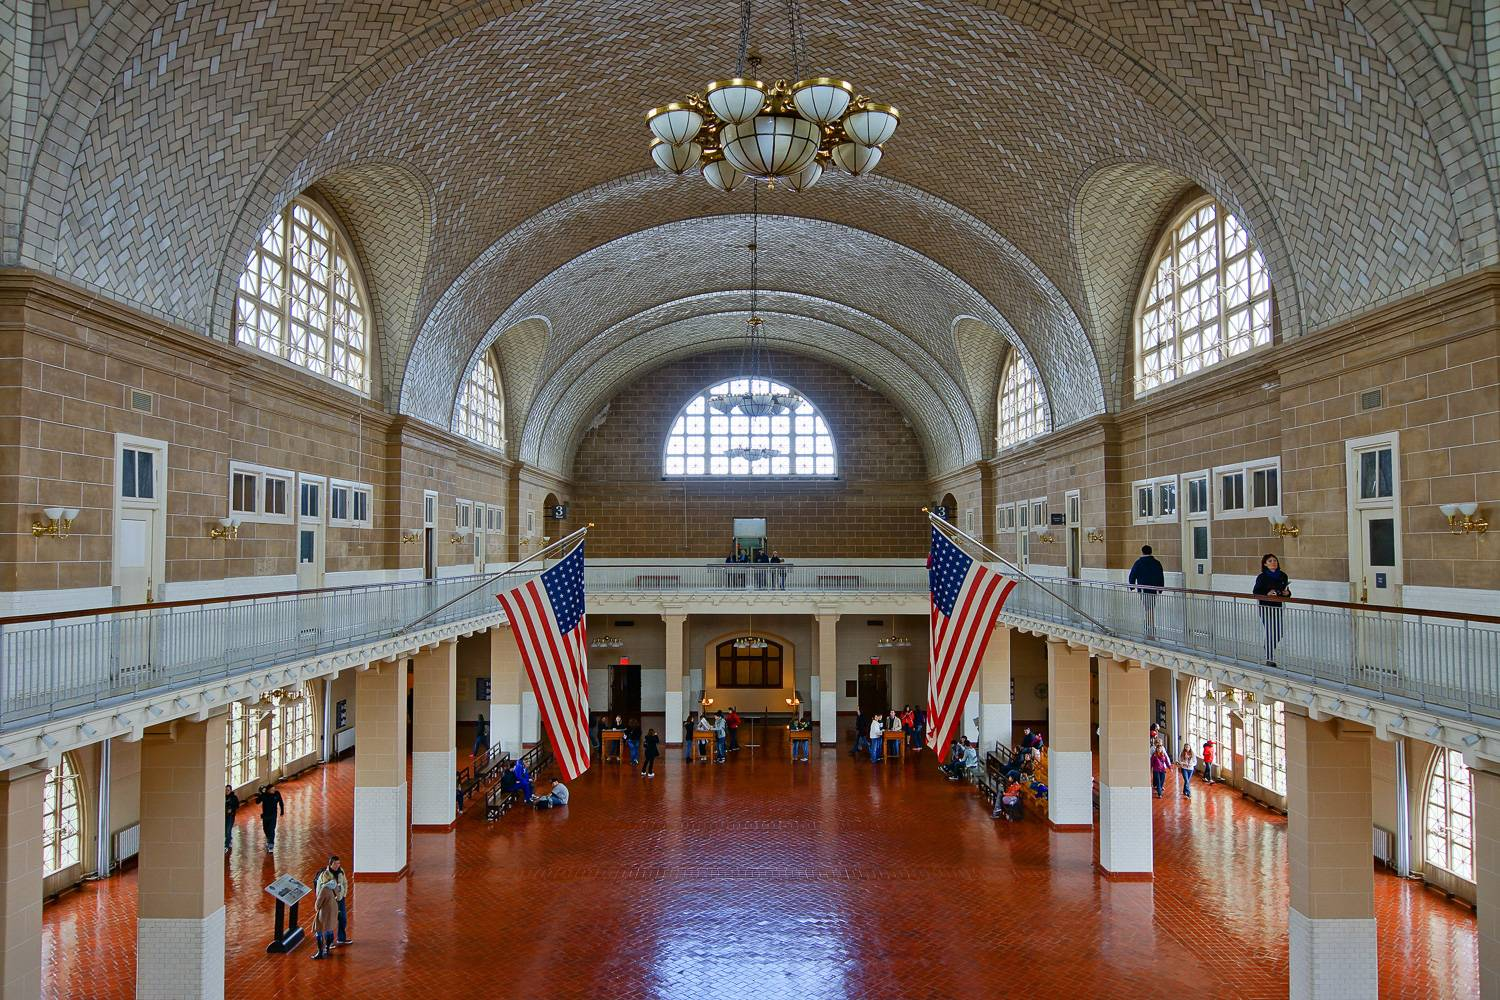 Image of the main hall at Ellis Island.